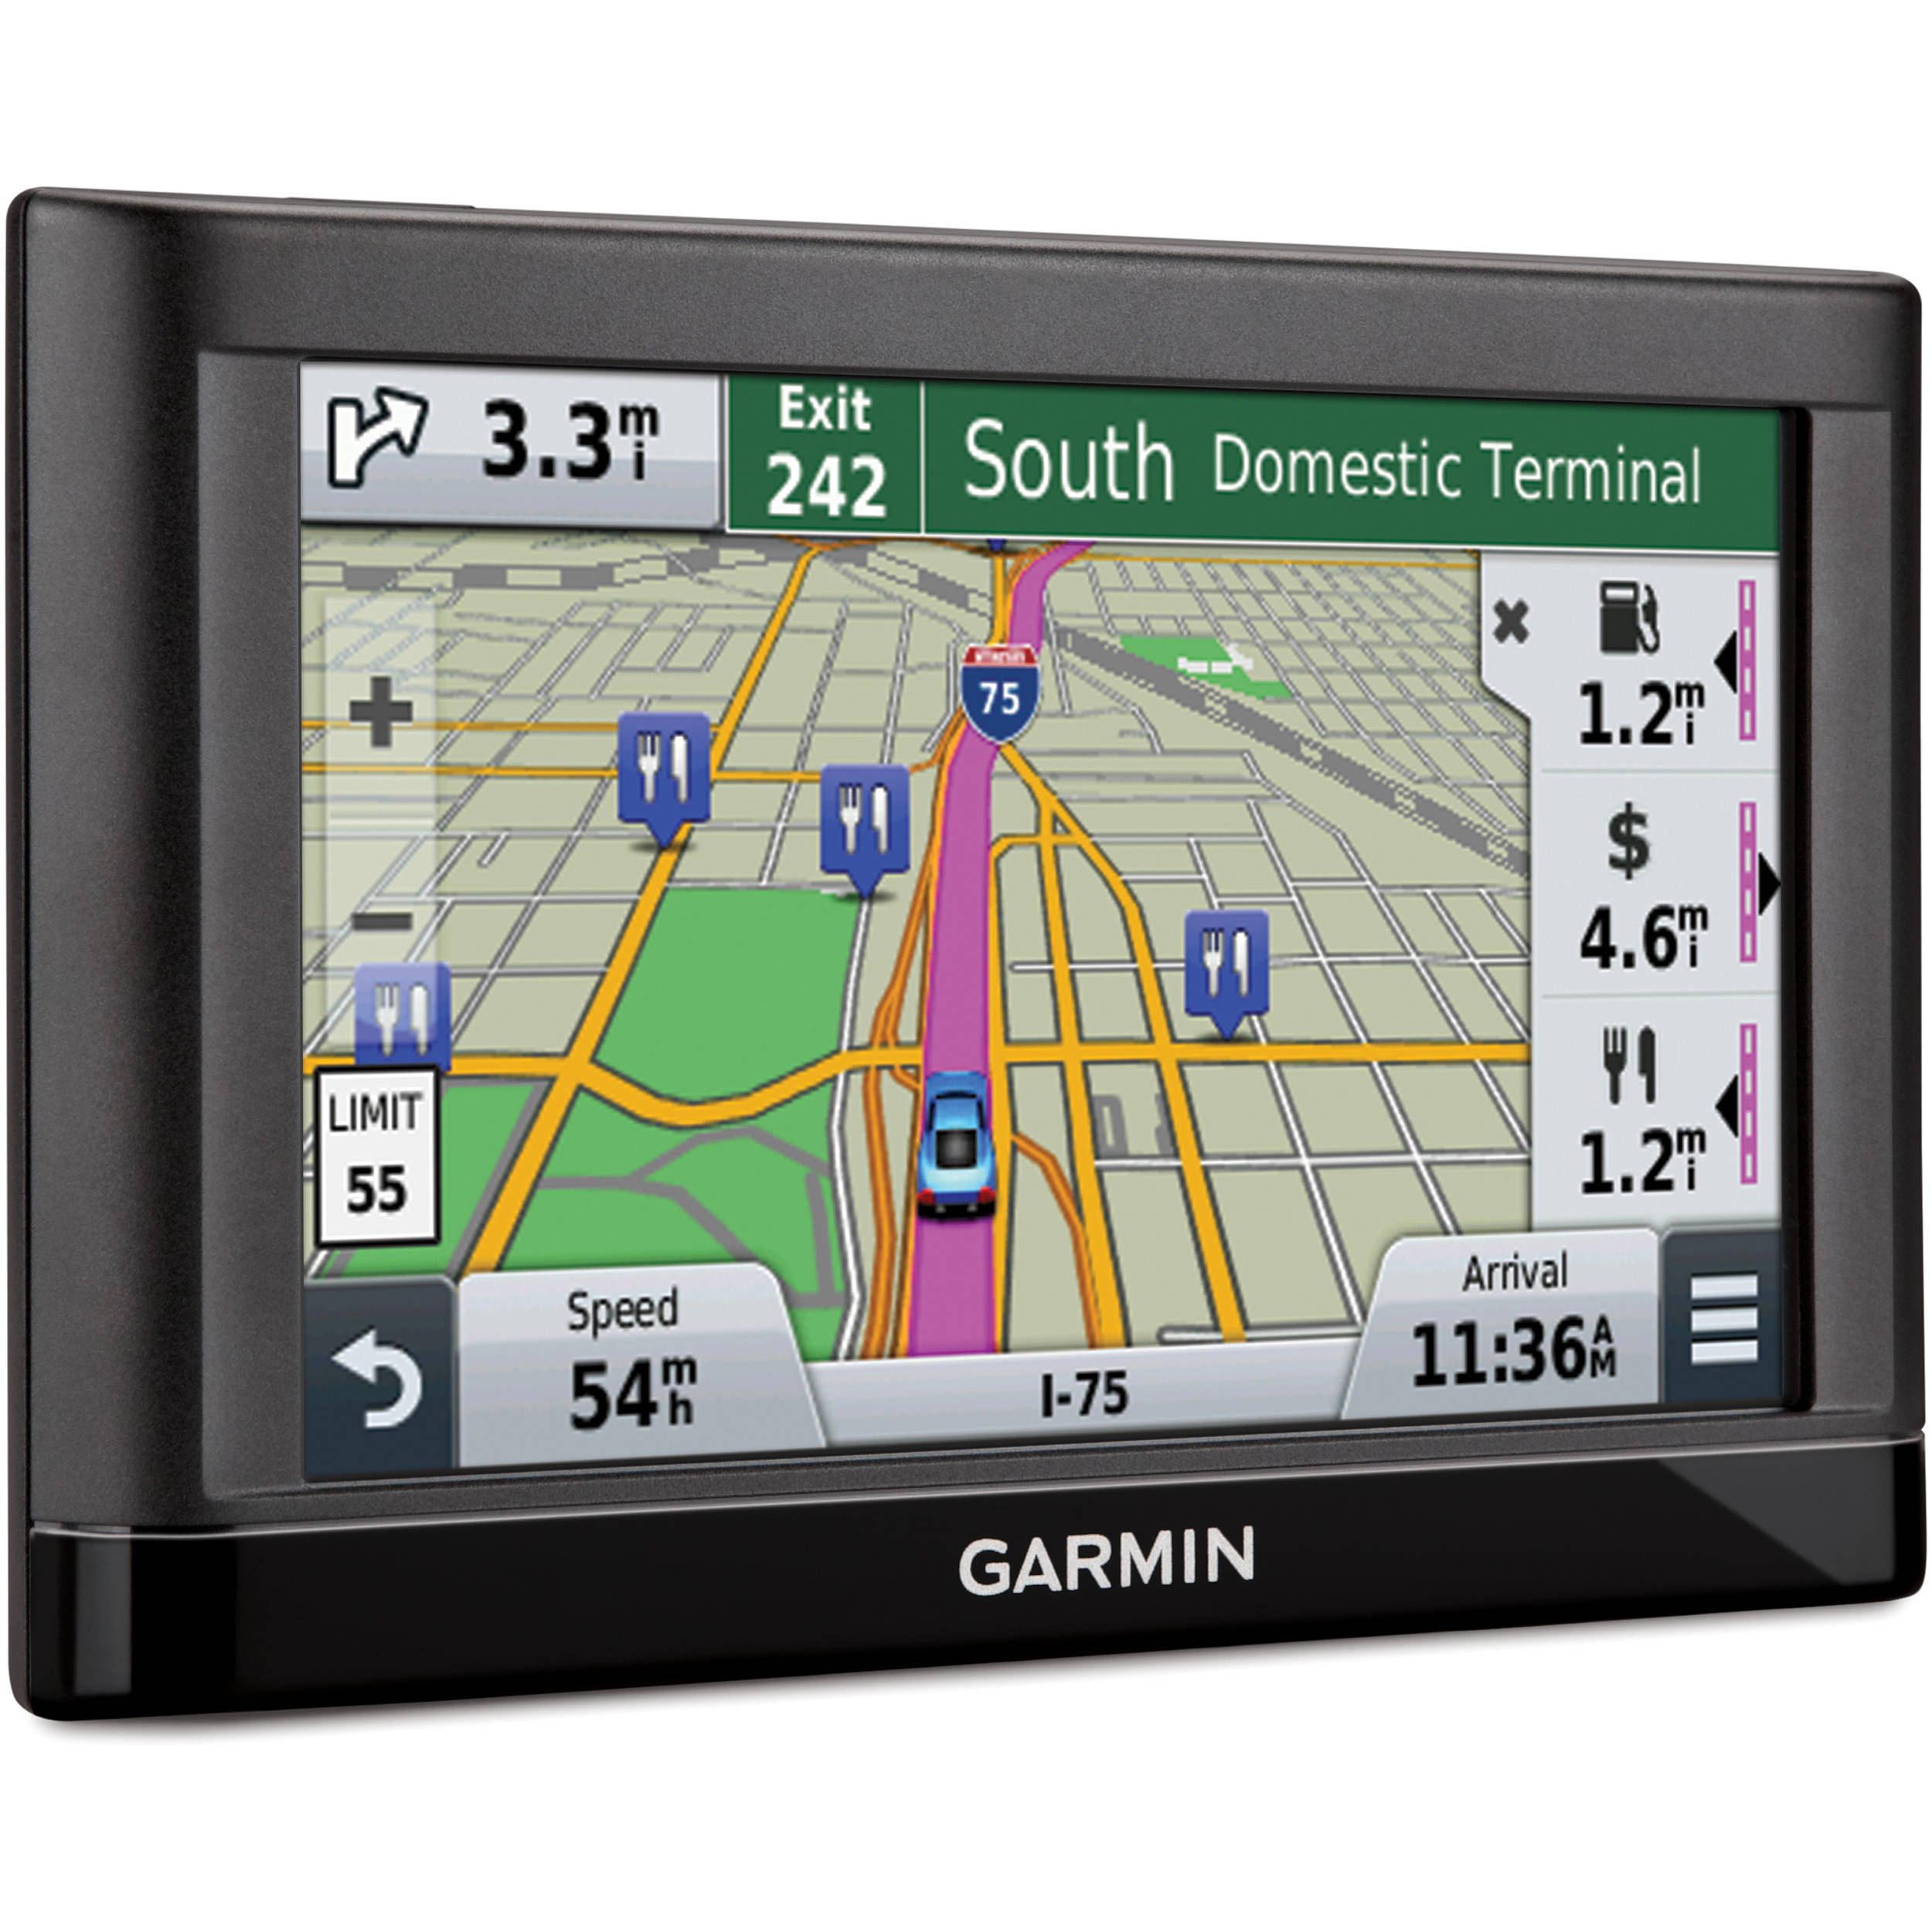 Garmin Nuvi LM GPS With USCanada Maps Maps BH - How to use both us and canada maps in gps